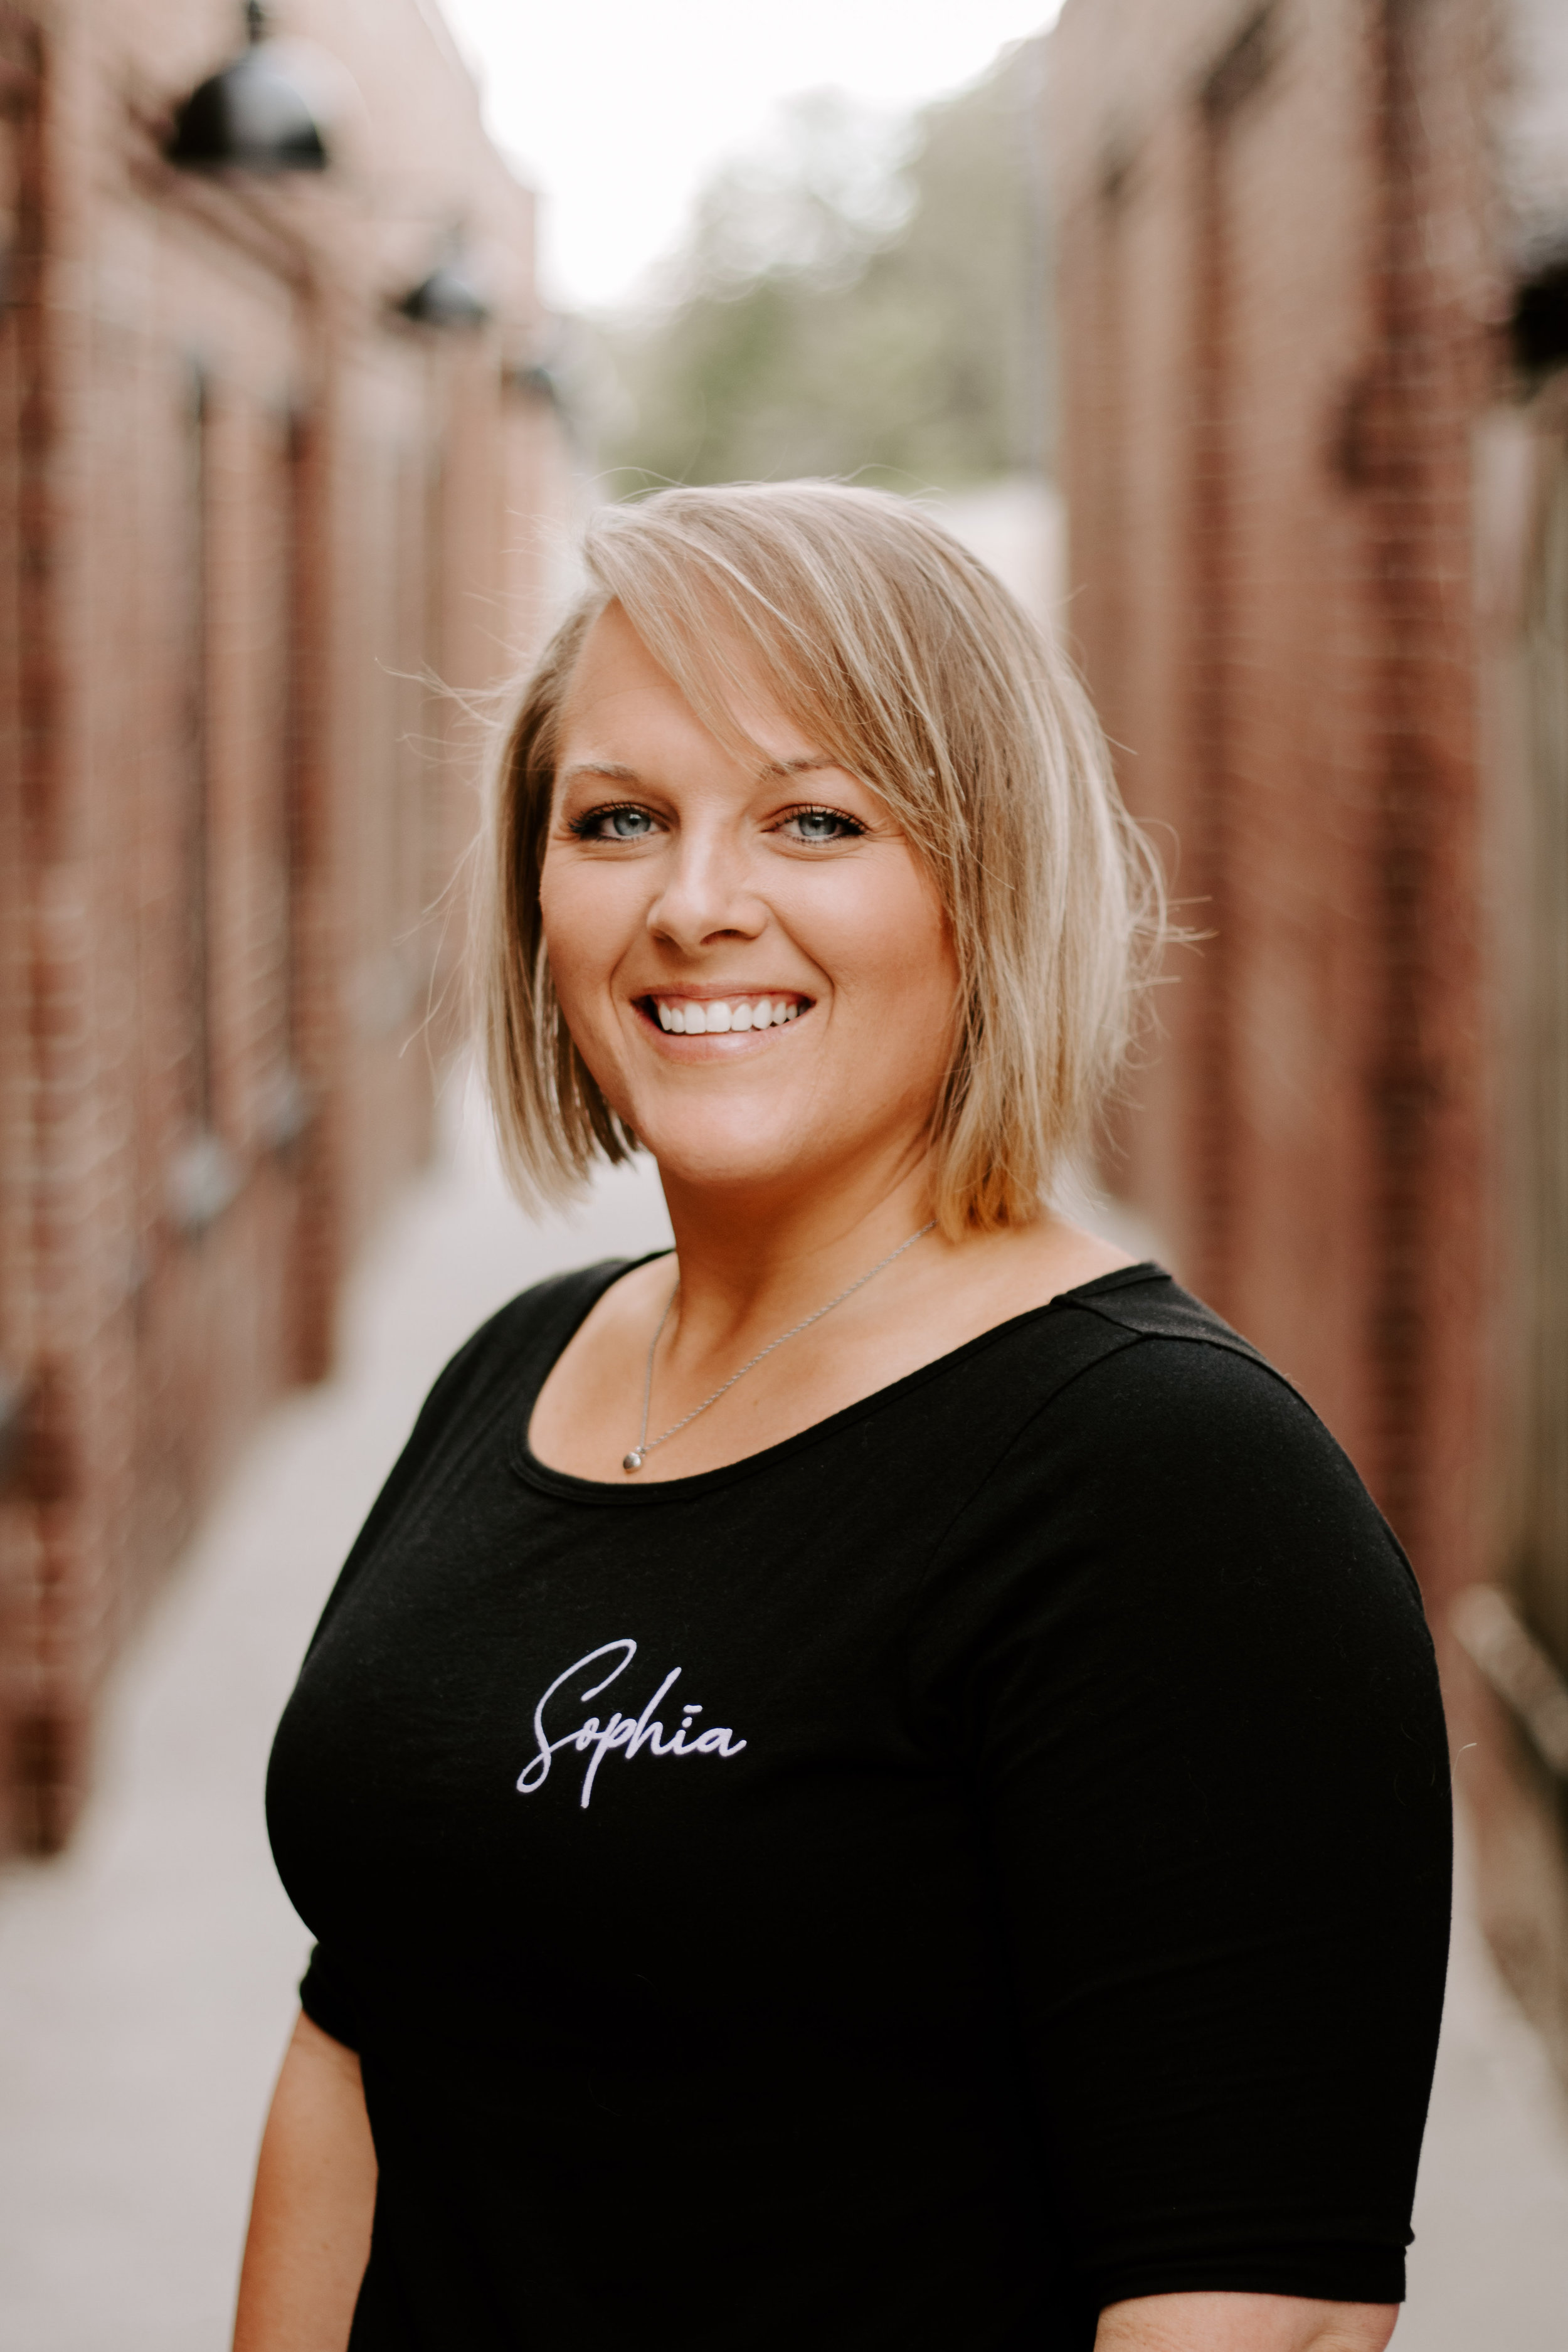 Meghan Stonier-Howe - CMT & Licensed EstheticianLife CoachMassage Therapist Waxing & Skincare(812) 360-0358